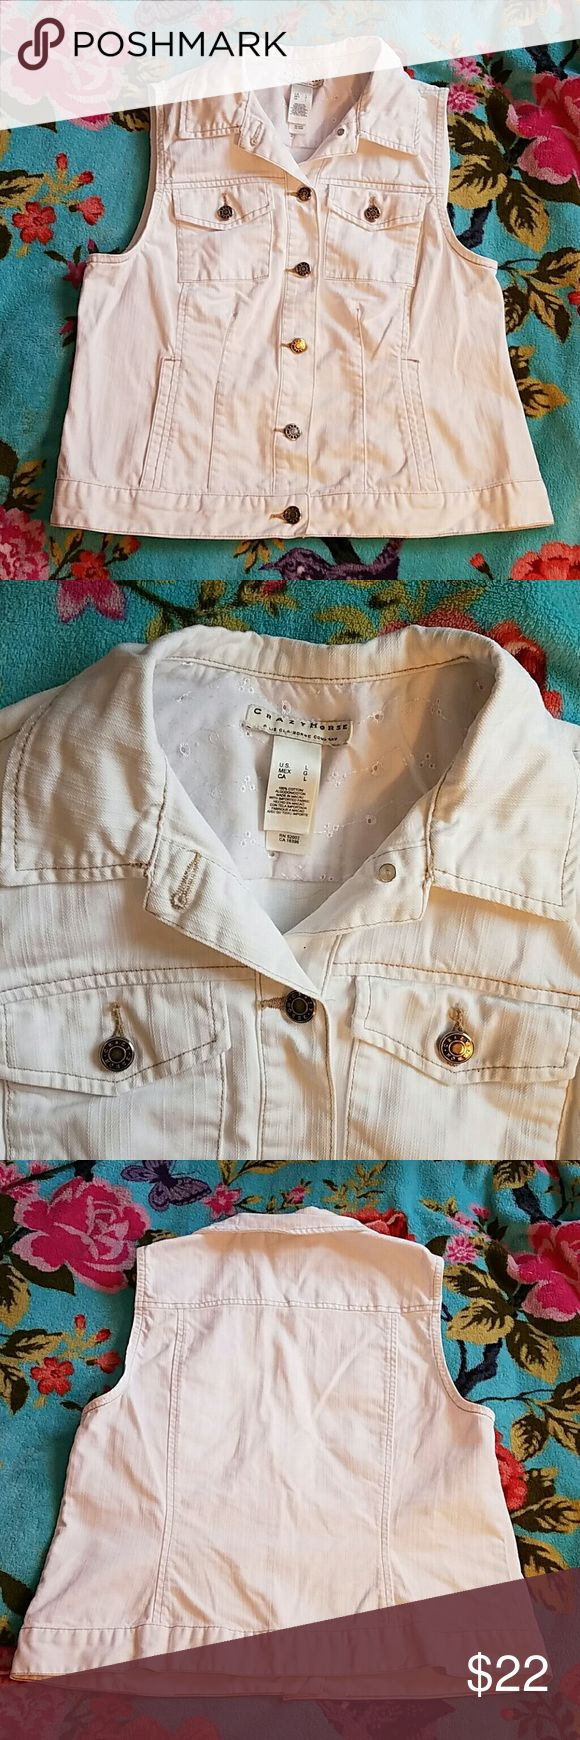 Crazy Horse large white jean vest with lace nwot Super cute size large white jean vest by Crazy Horse. This is brand new without tags thanks to my children LOL. Buckle Jackets & Coats Vests